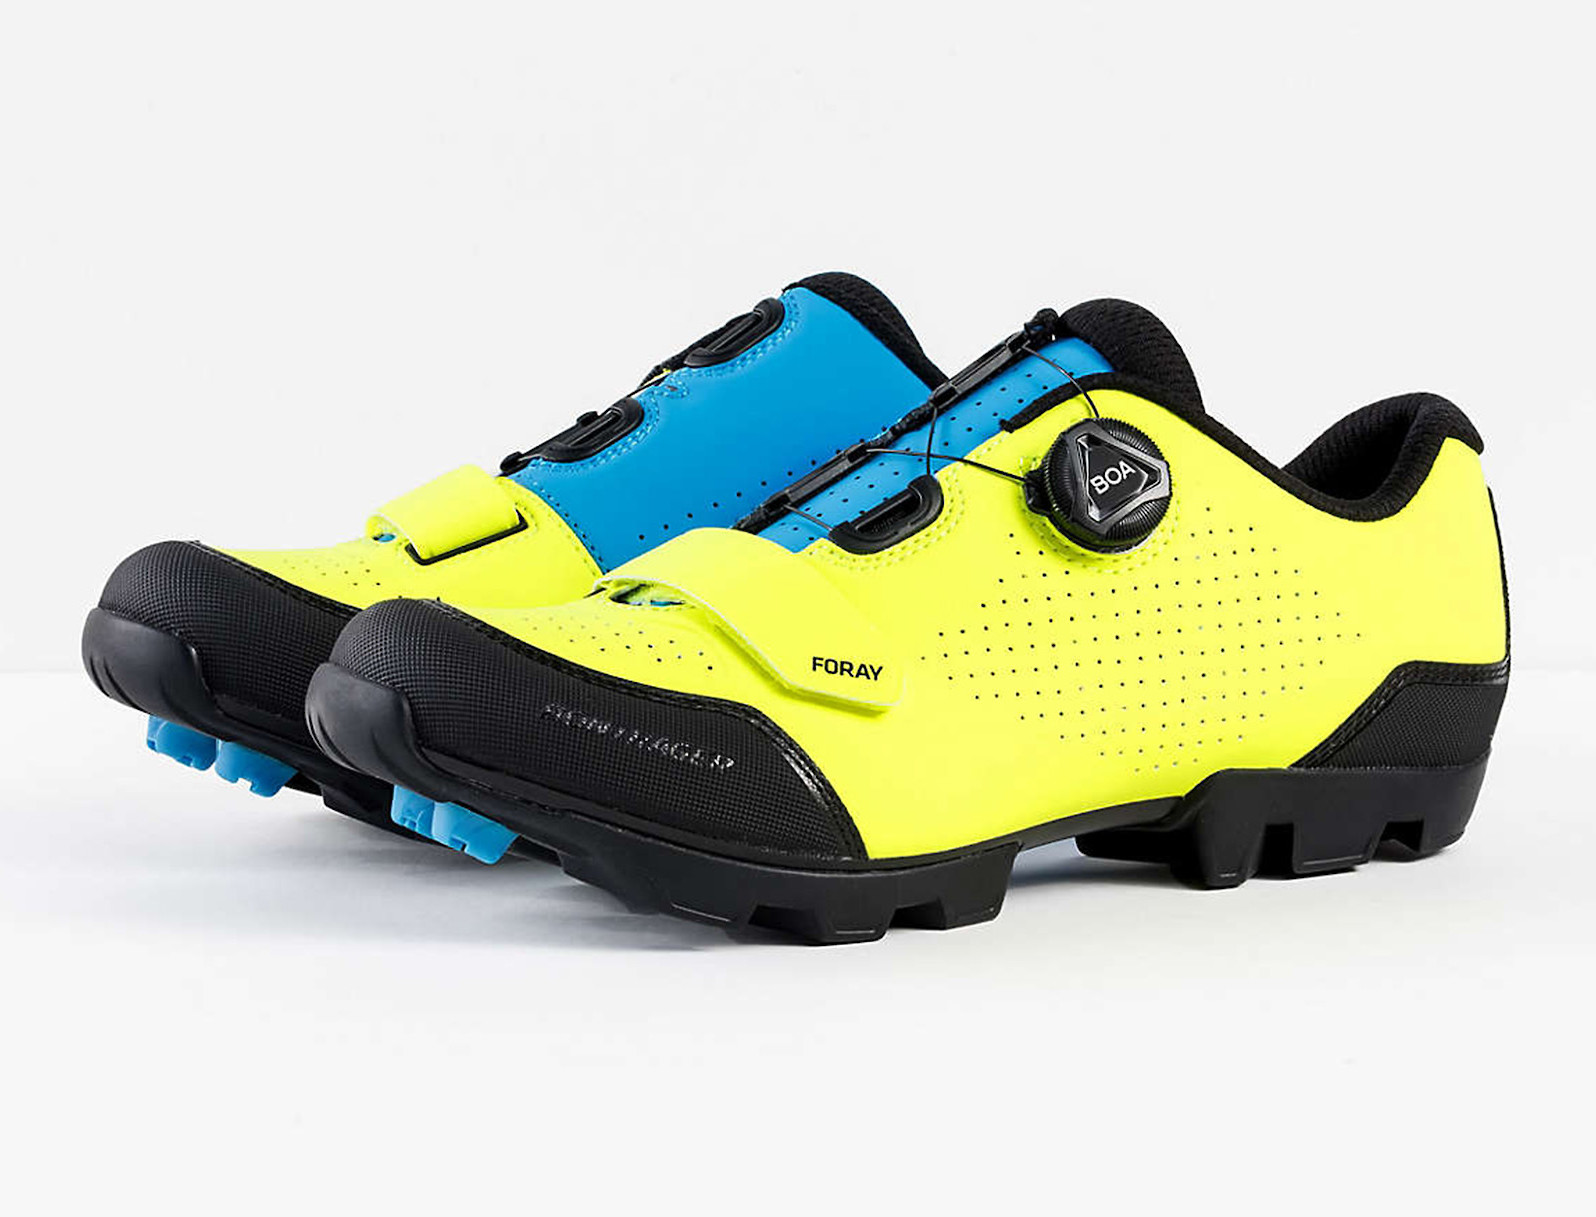 Bontrager Foray Clipless Shoes